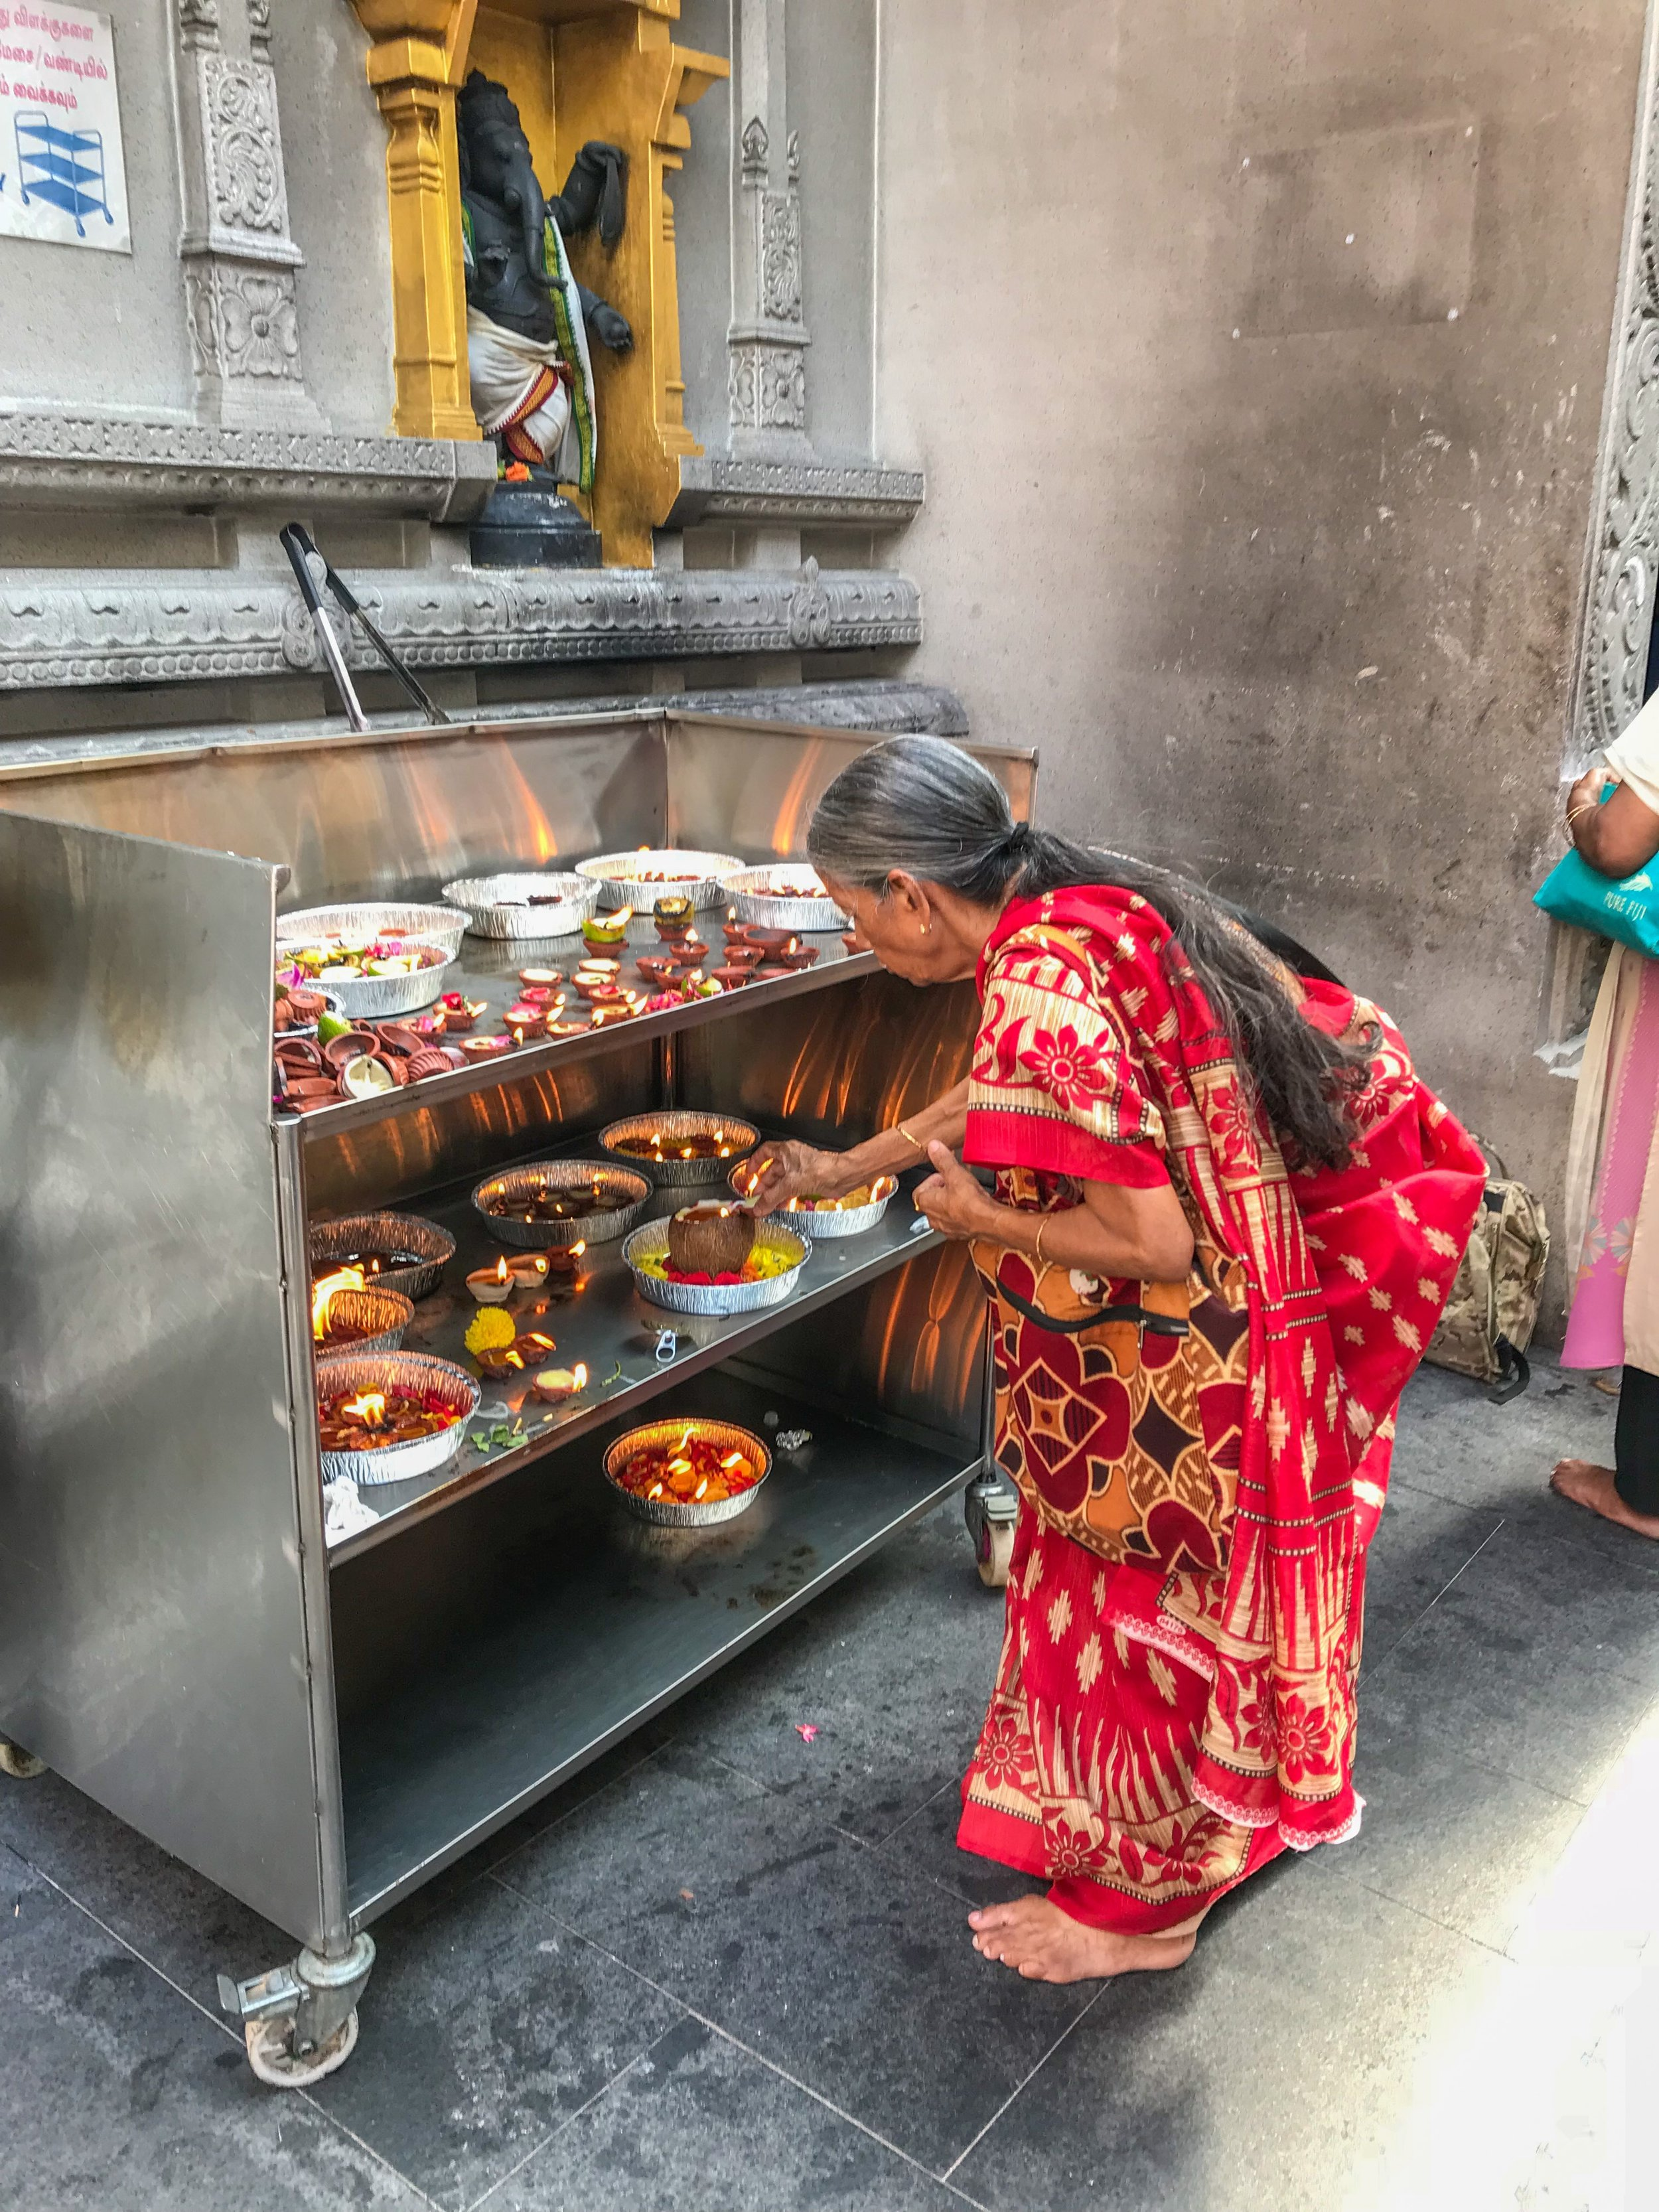 Offerings in a Hindu temple in Singapore's Little India